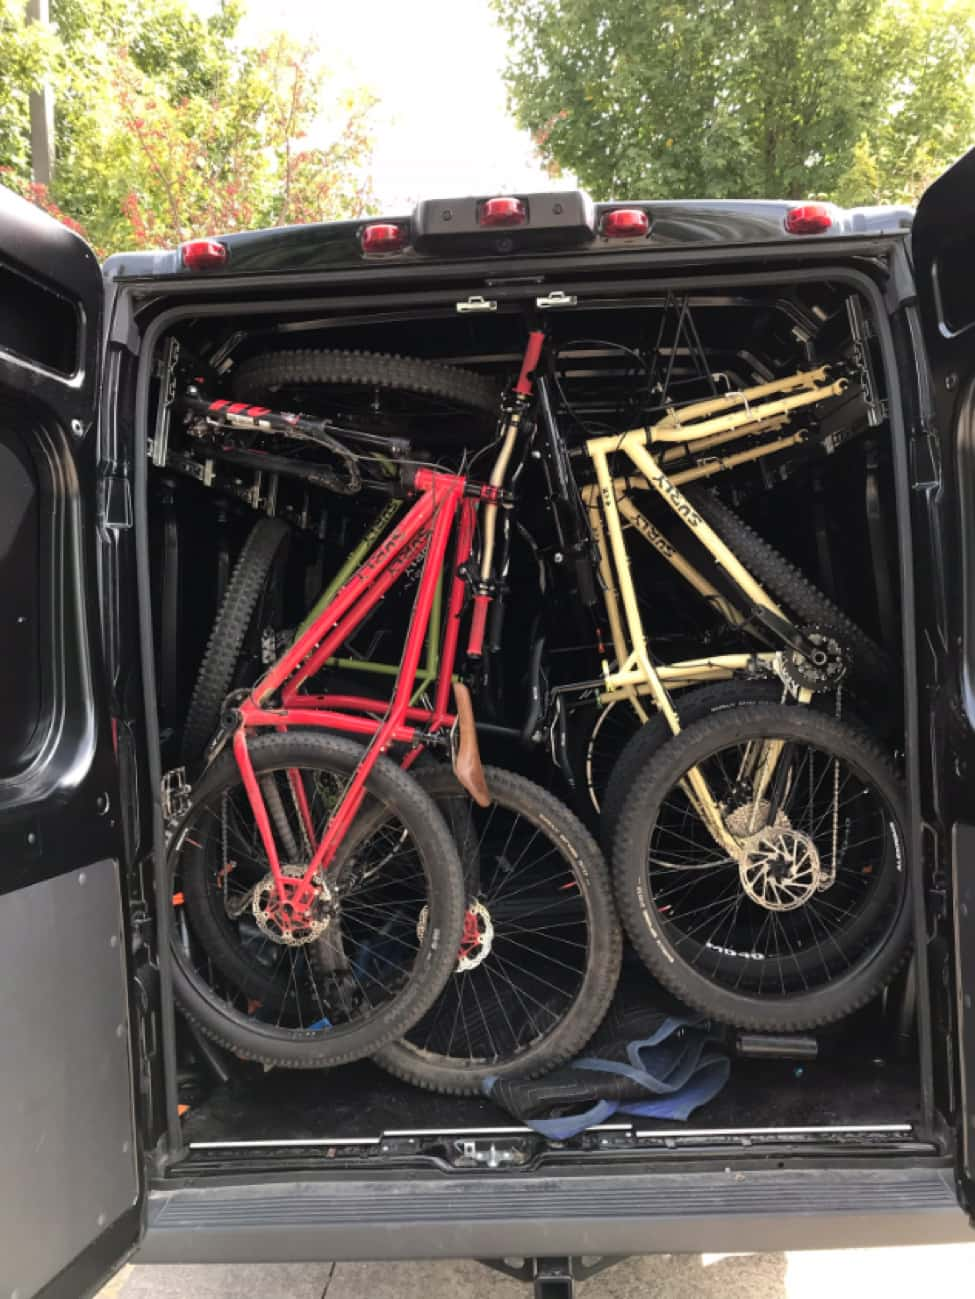 Rear view of a van with the rear doors open, showing Surly bikes packed in, seat to seat, from top to bottom